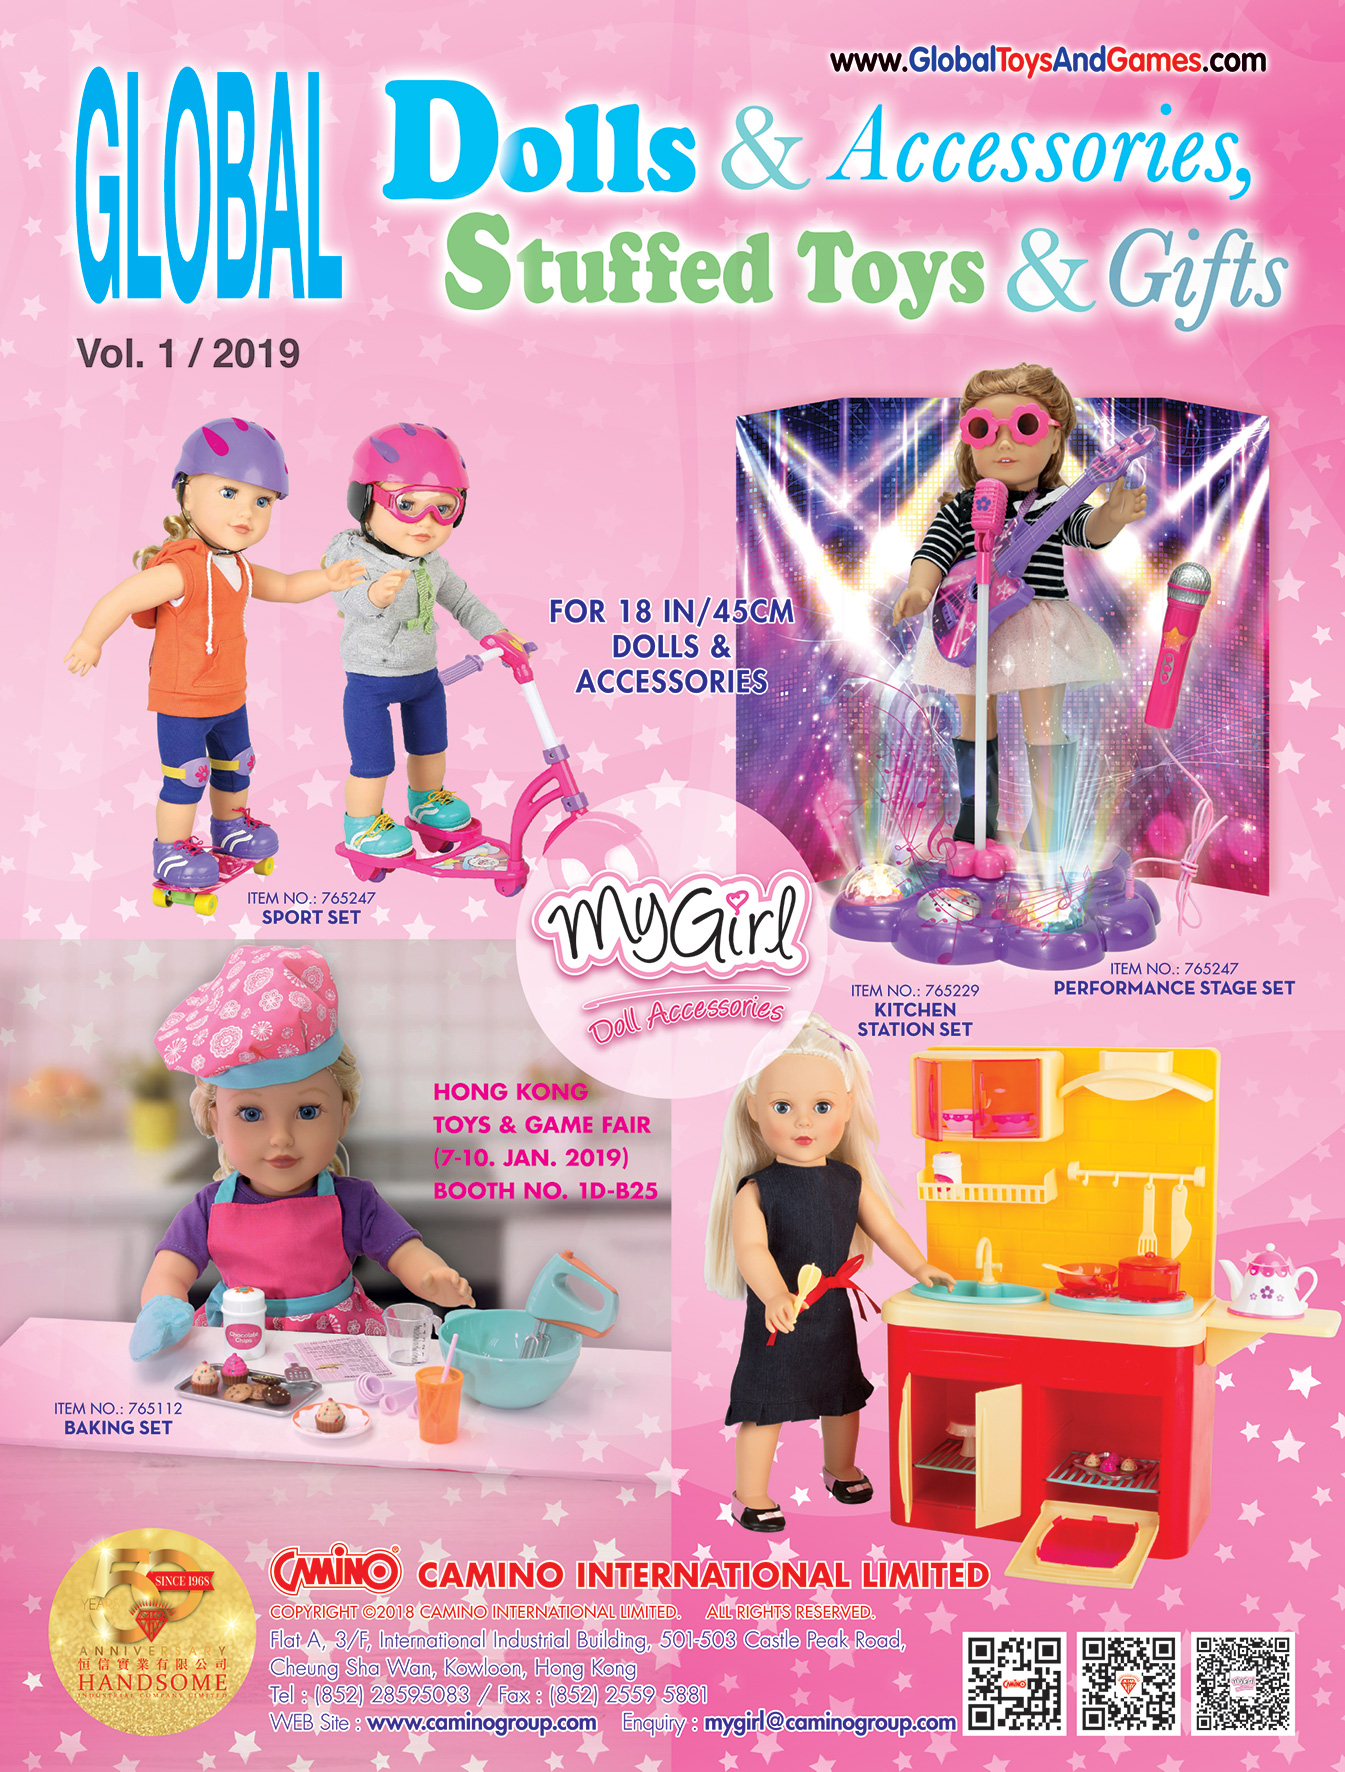 Global Dolls & Accessories, Stuffed Toys & Gifts